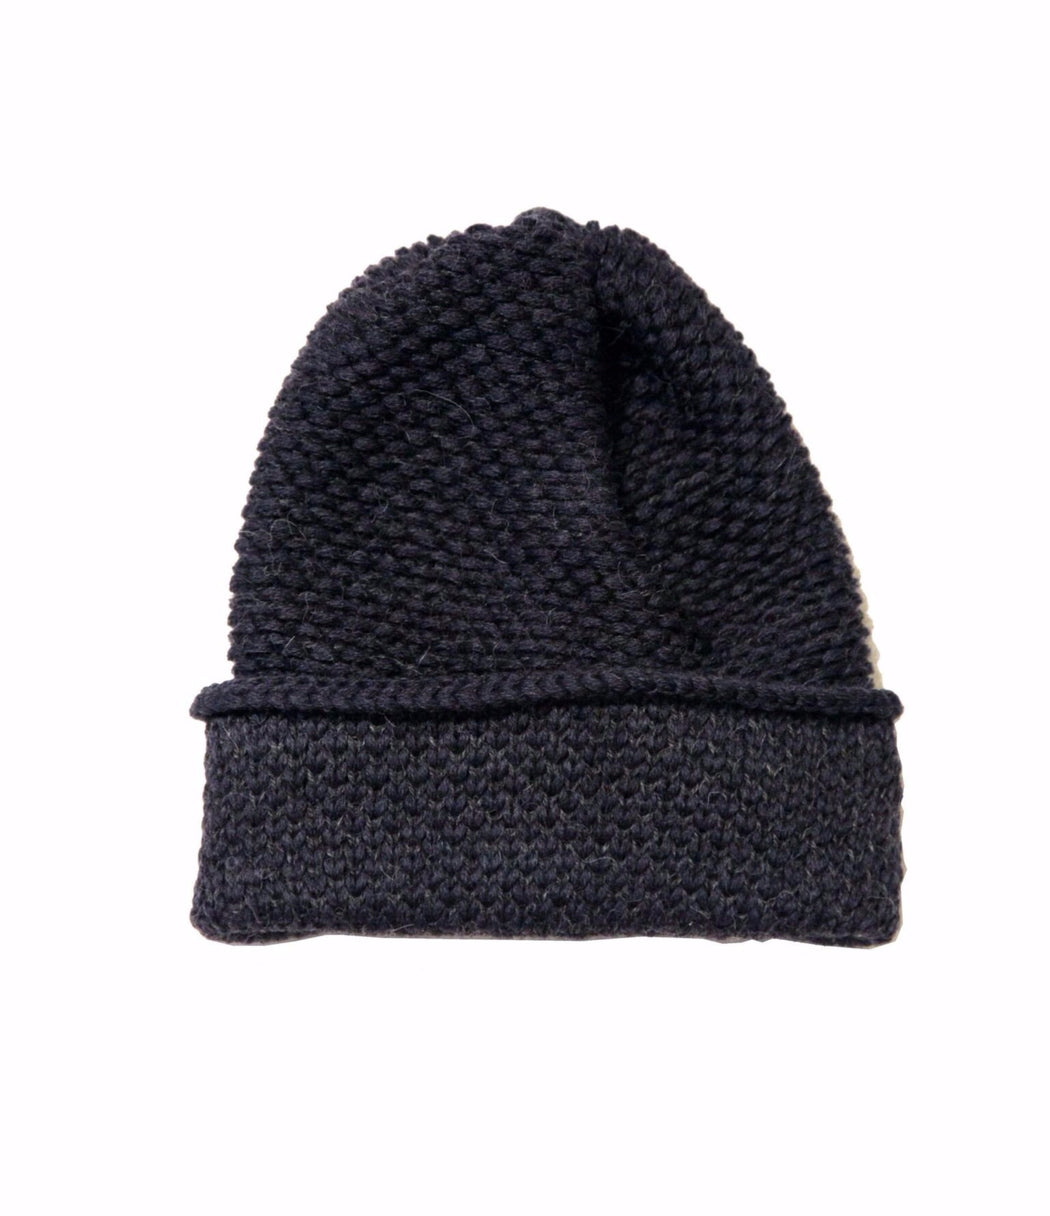 Kordal:Seed Stitch Beanie,navy + dark grey | SOLD OUT